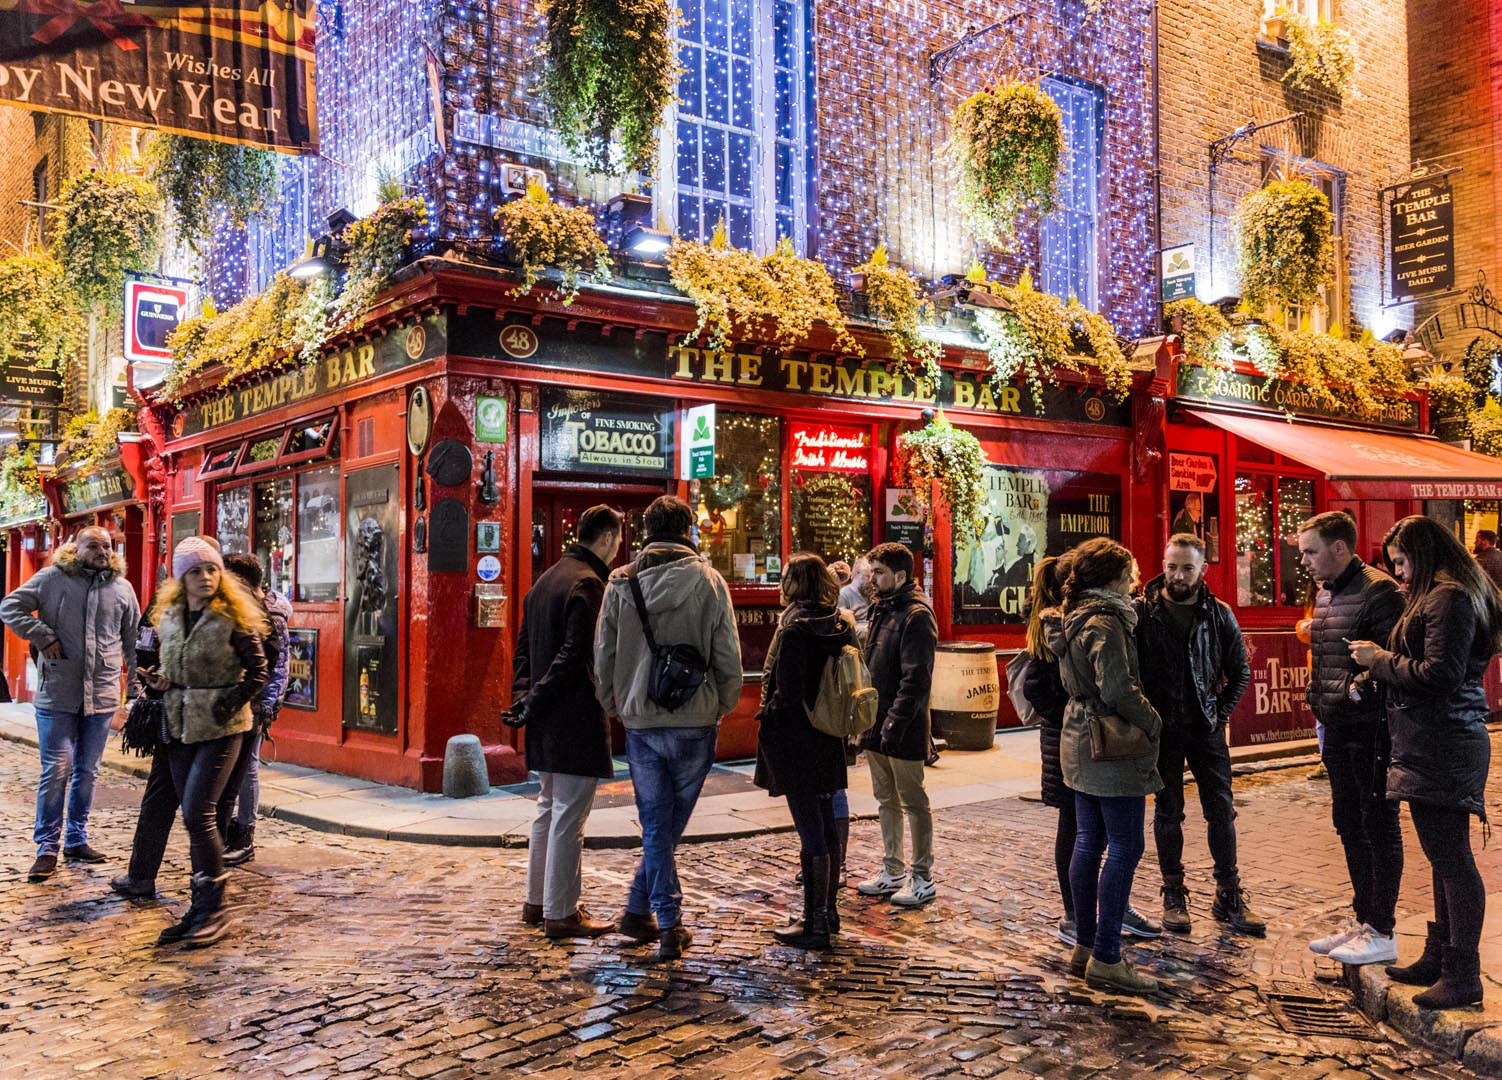 Dublin attractions - Temple Bar